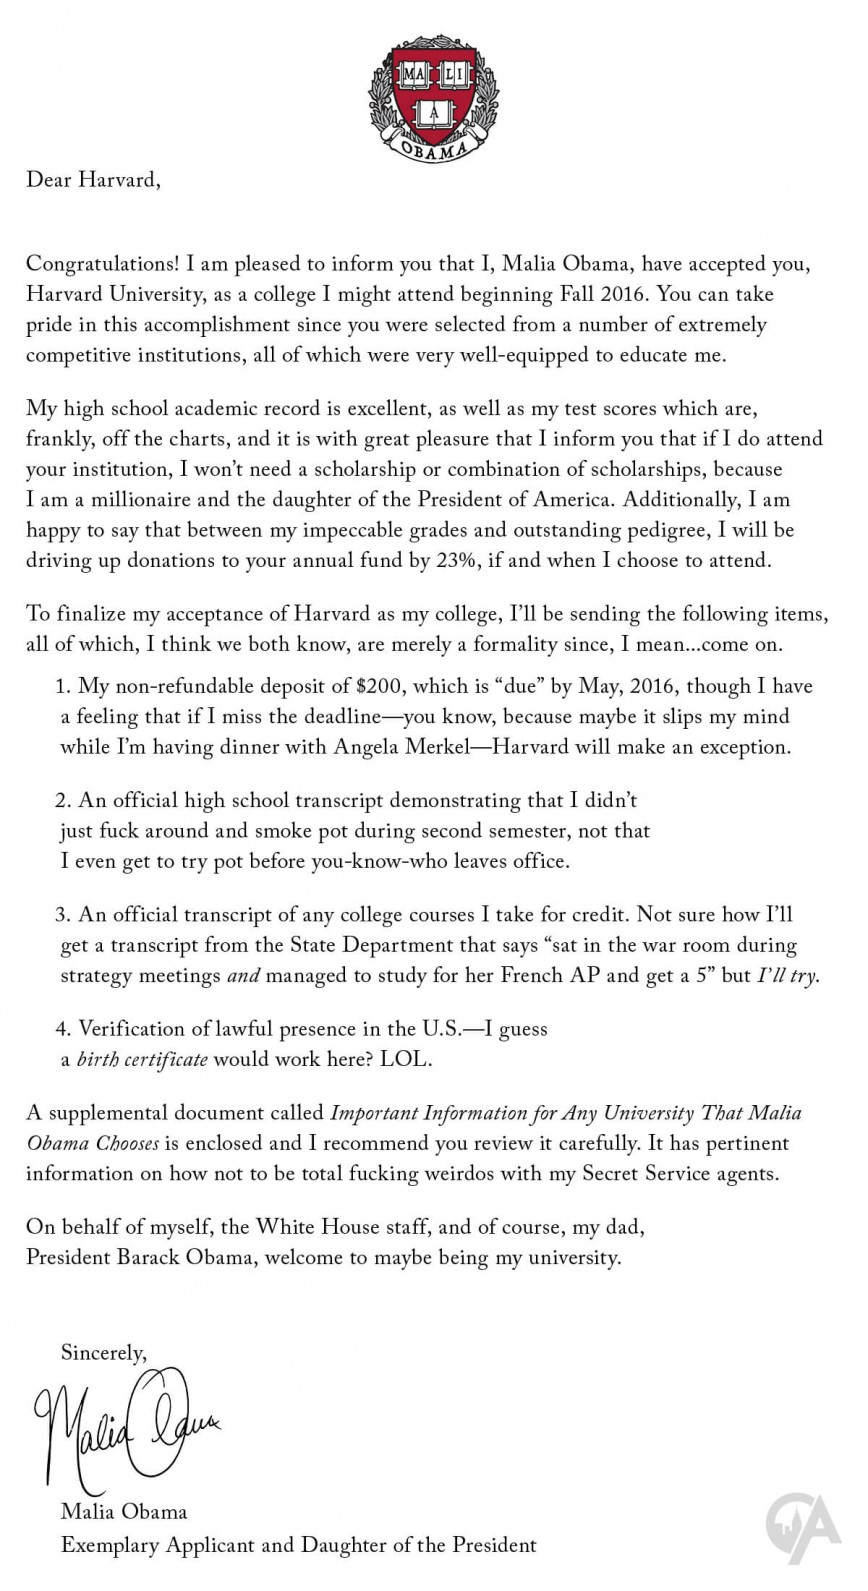 003 Harvard Acceptance Essays Essay Example Malia Obama Sends Letter To Maliaobamasacceptancelettertoha College Application That Were Frightening 50 Successful Pdf Free 2017 3rd Edition 868